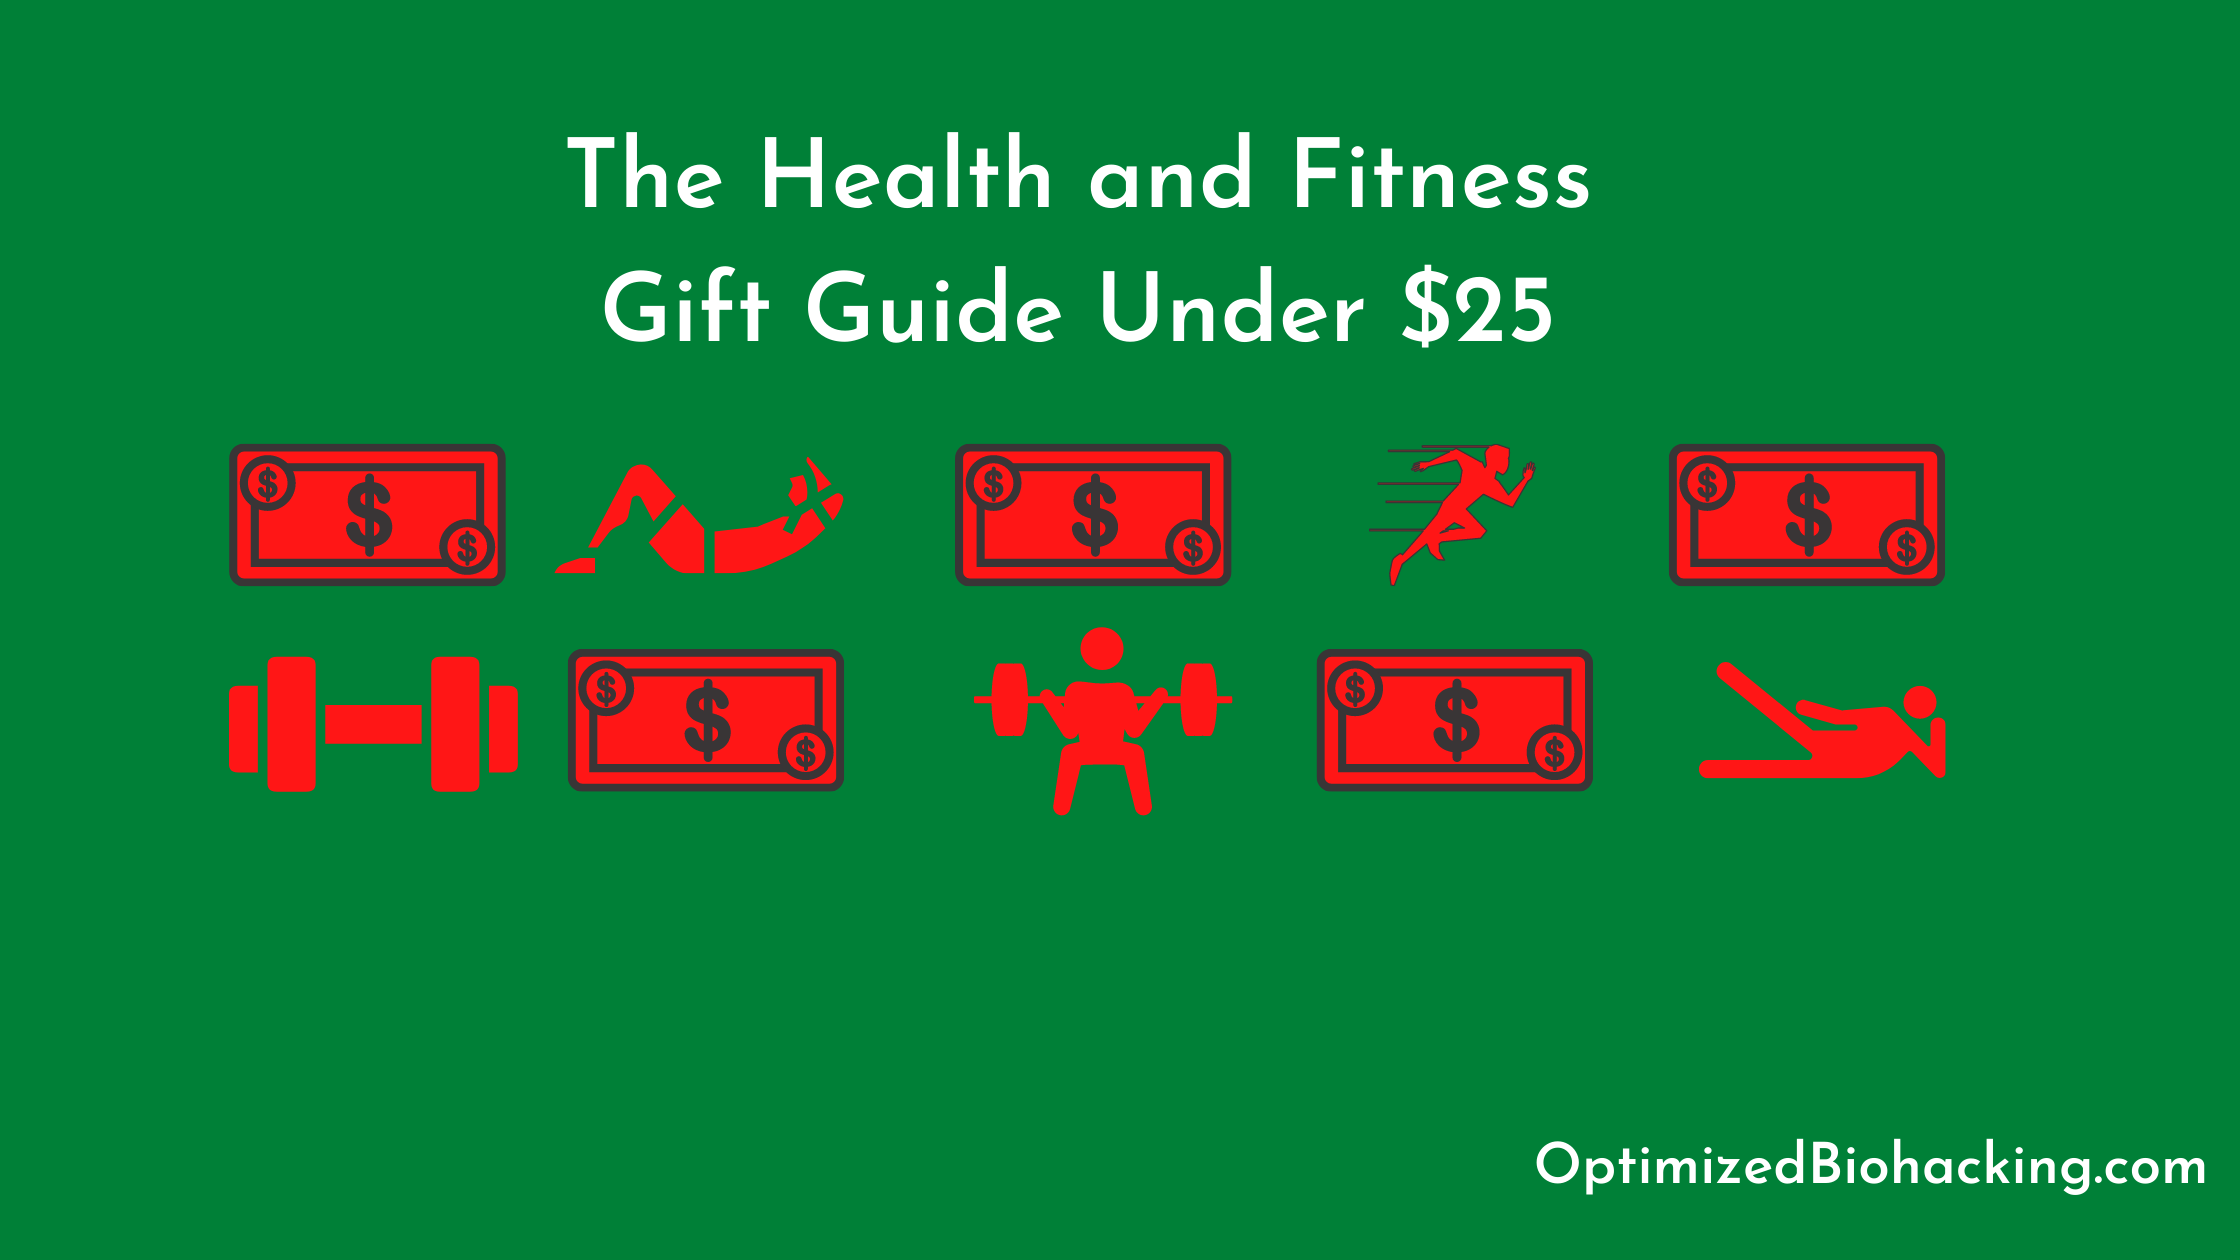 Health and Fitness Gift Guide under $25